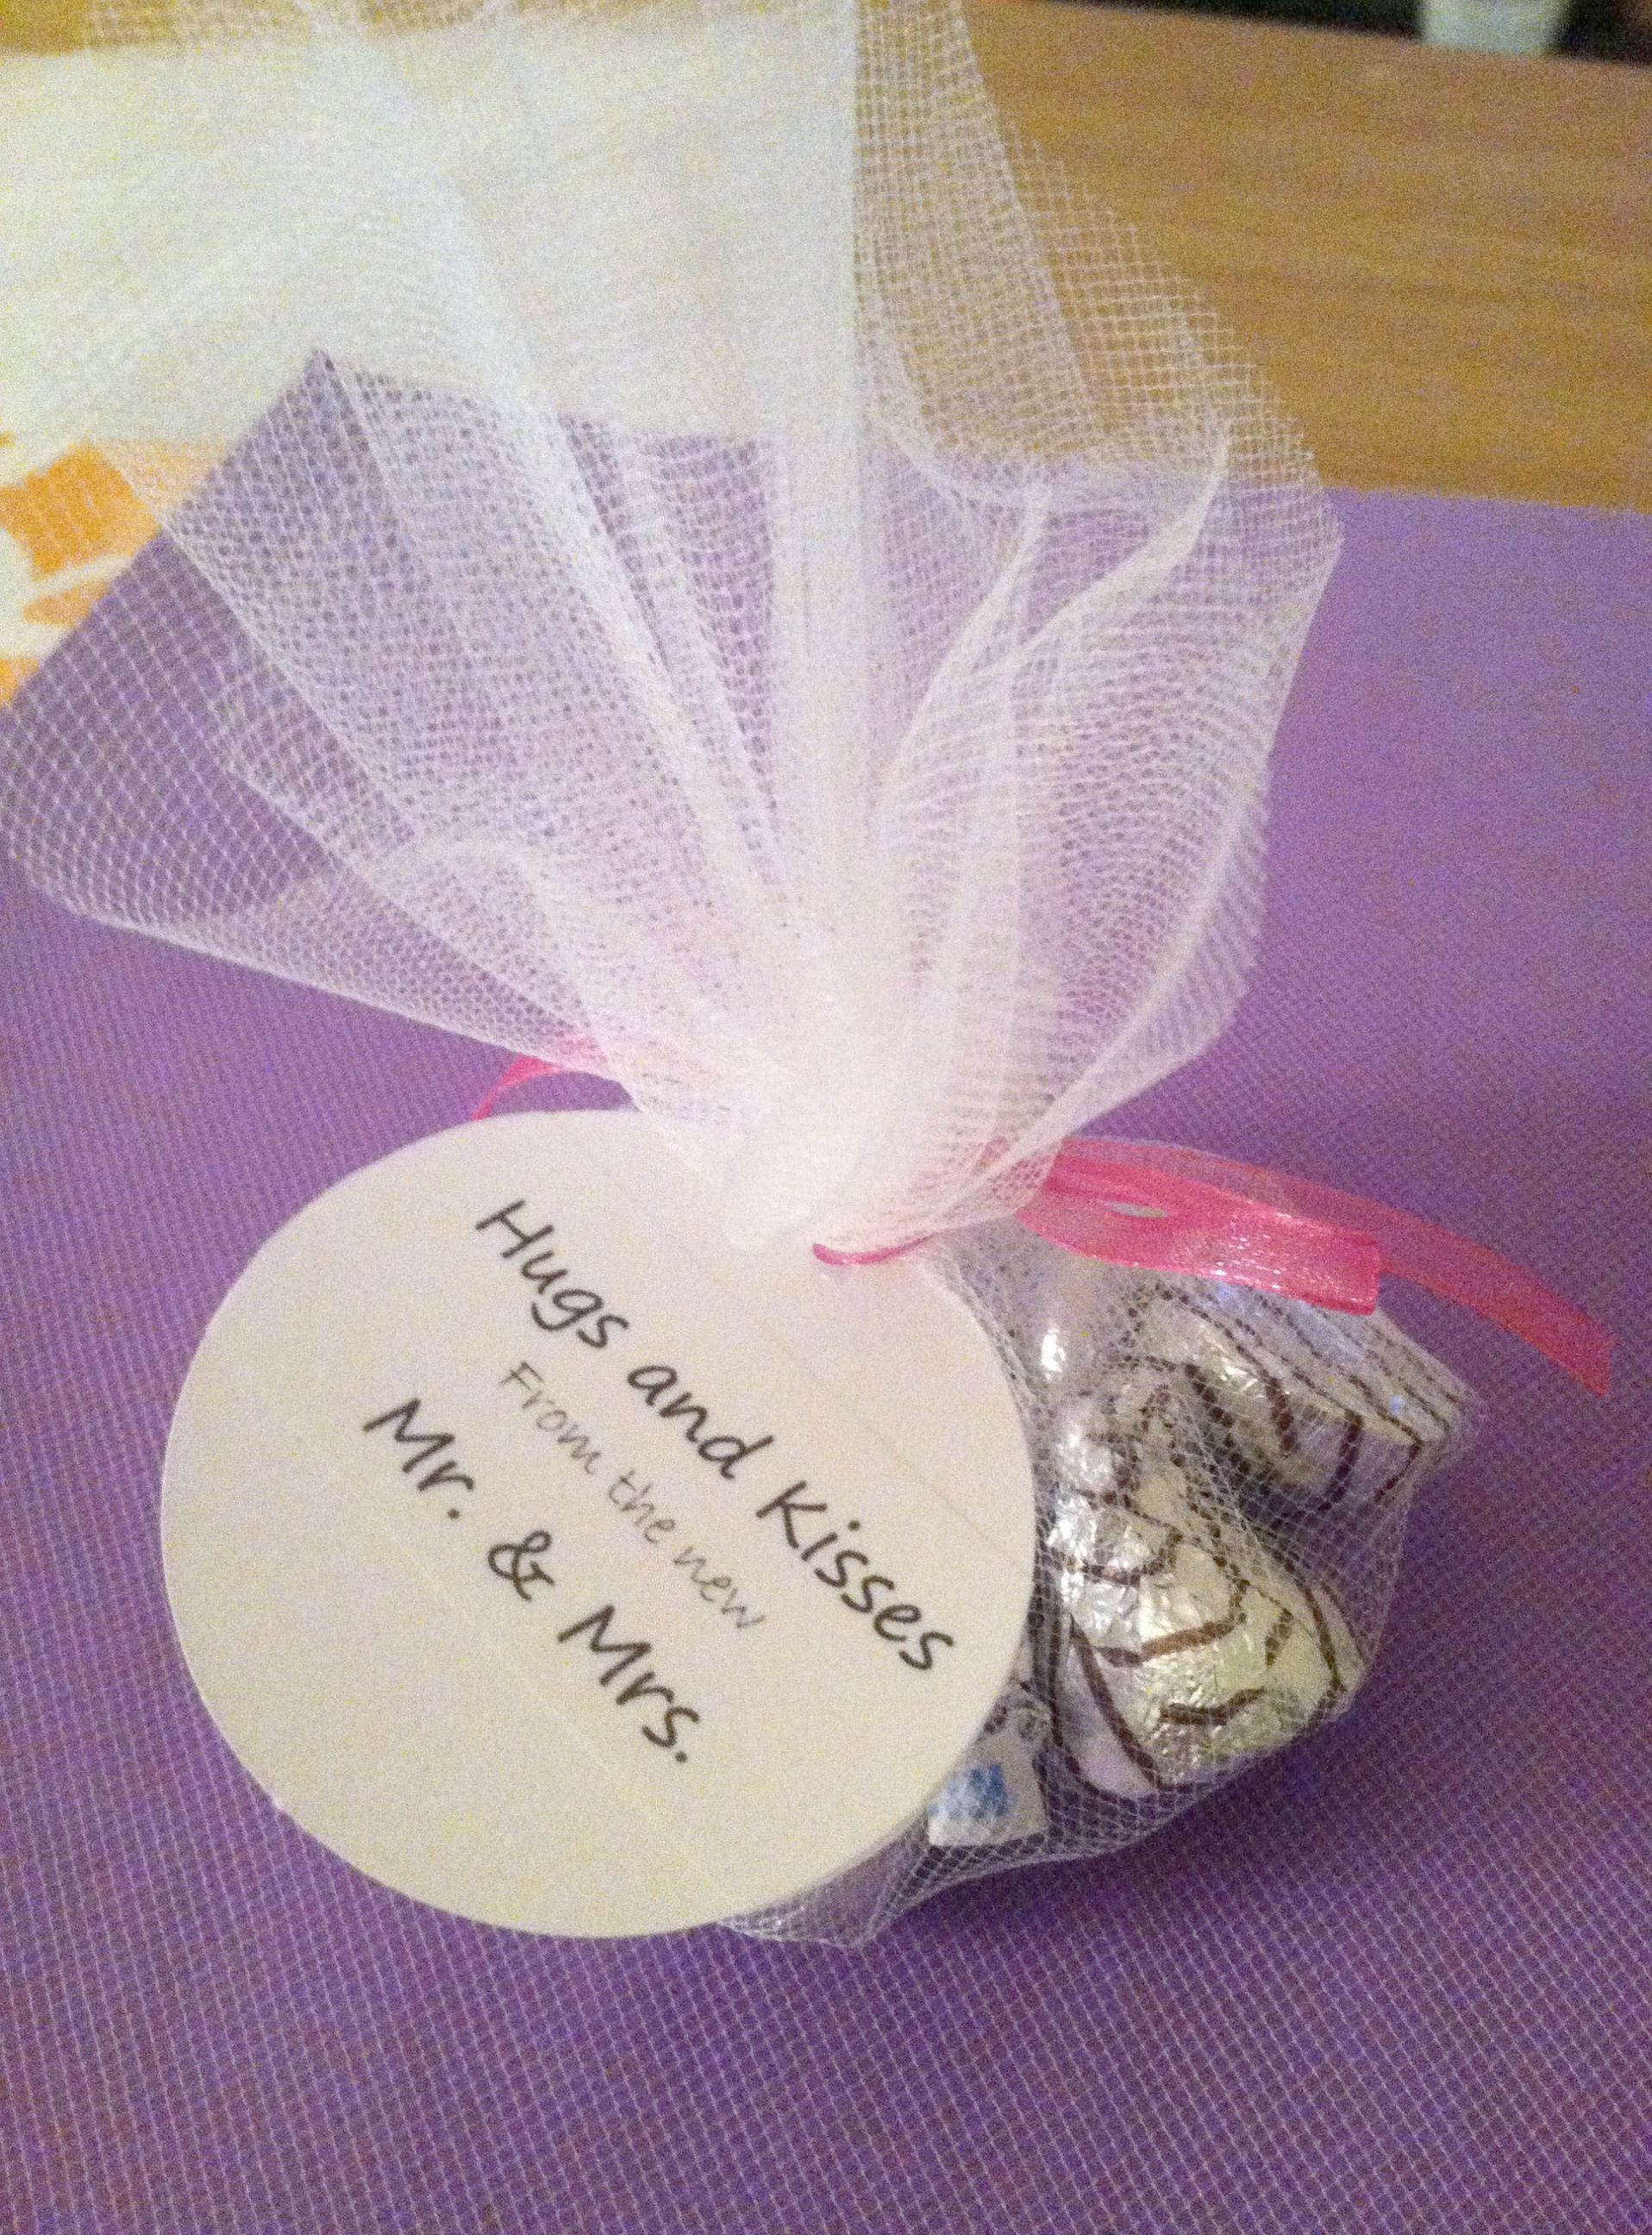 wedding favors stemless wine glasses unique wedding favors canada wedding 2015 dream wedding fall